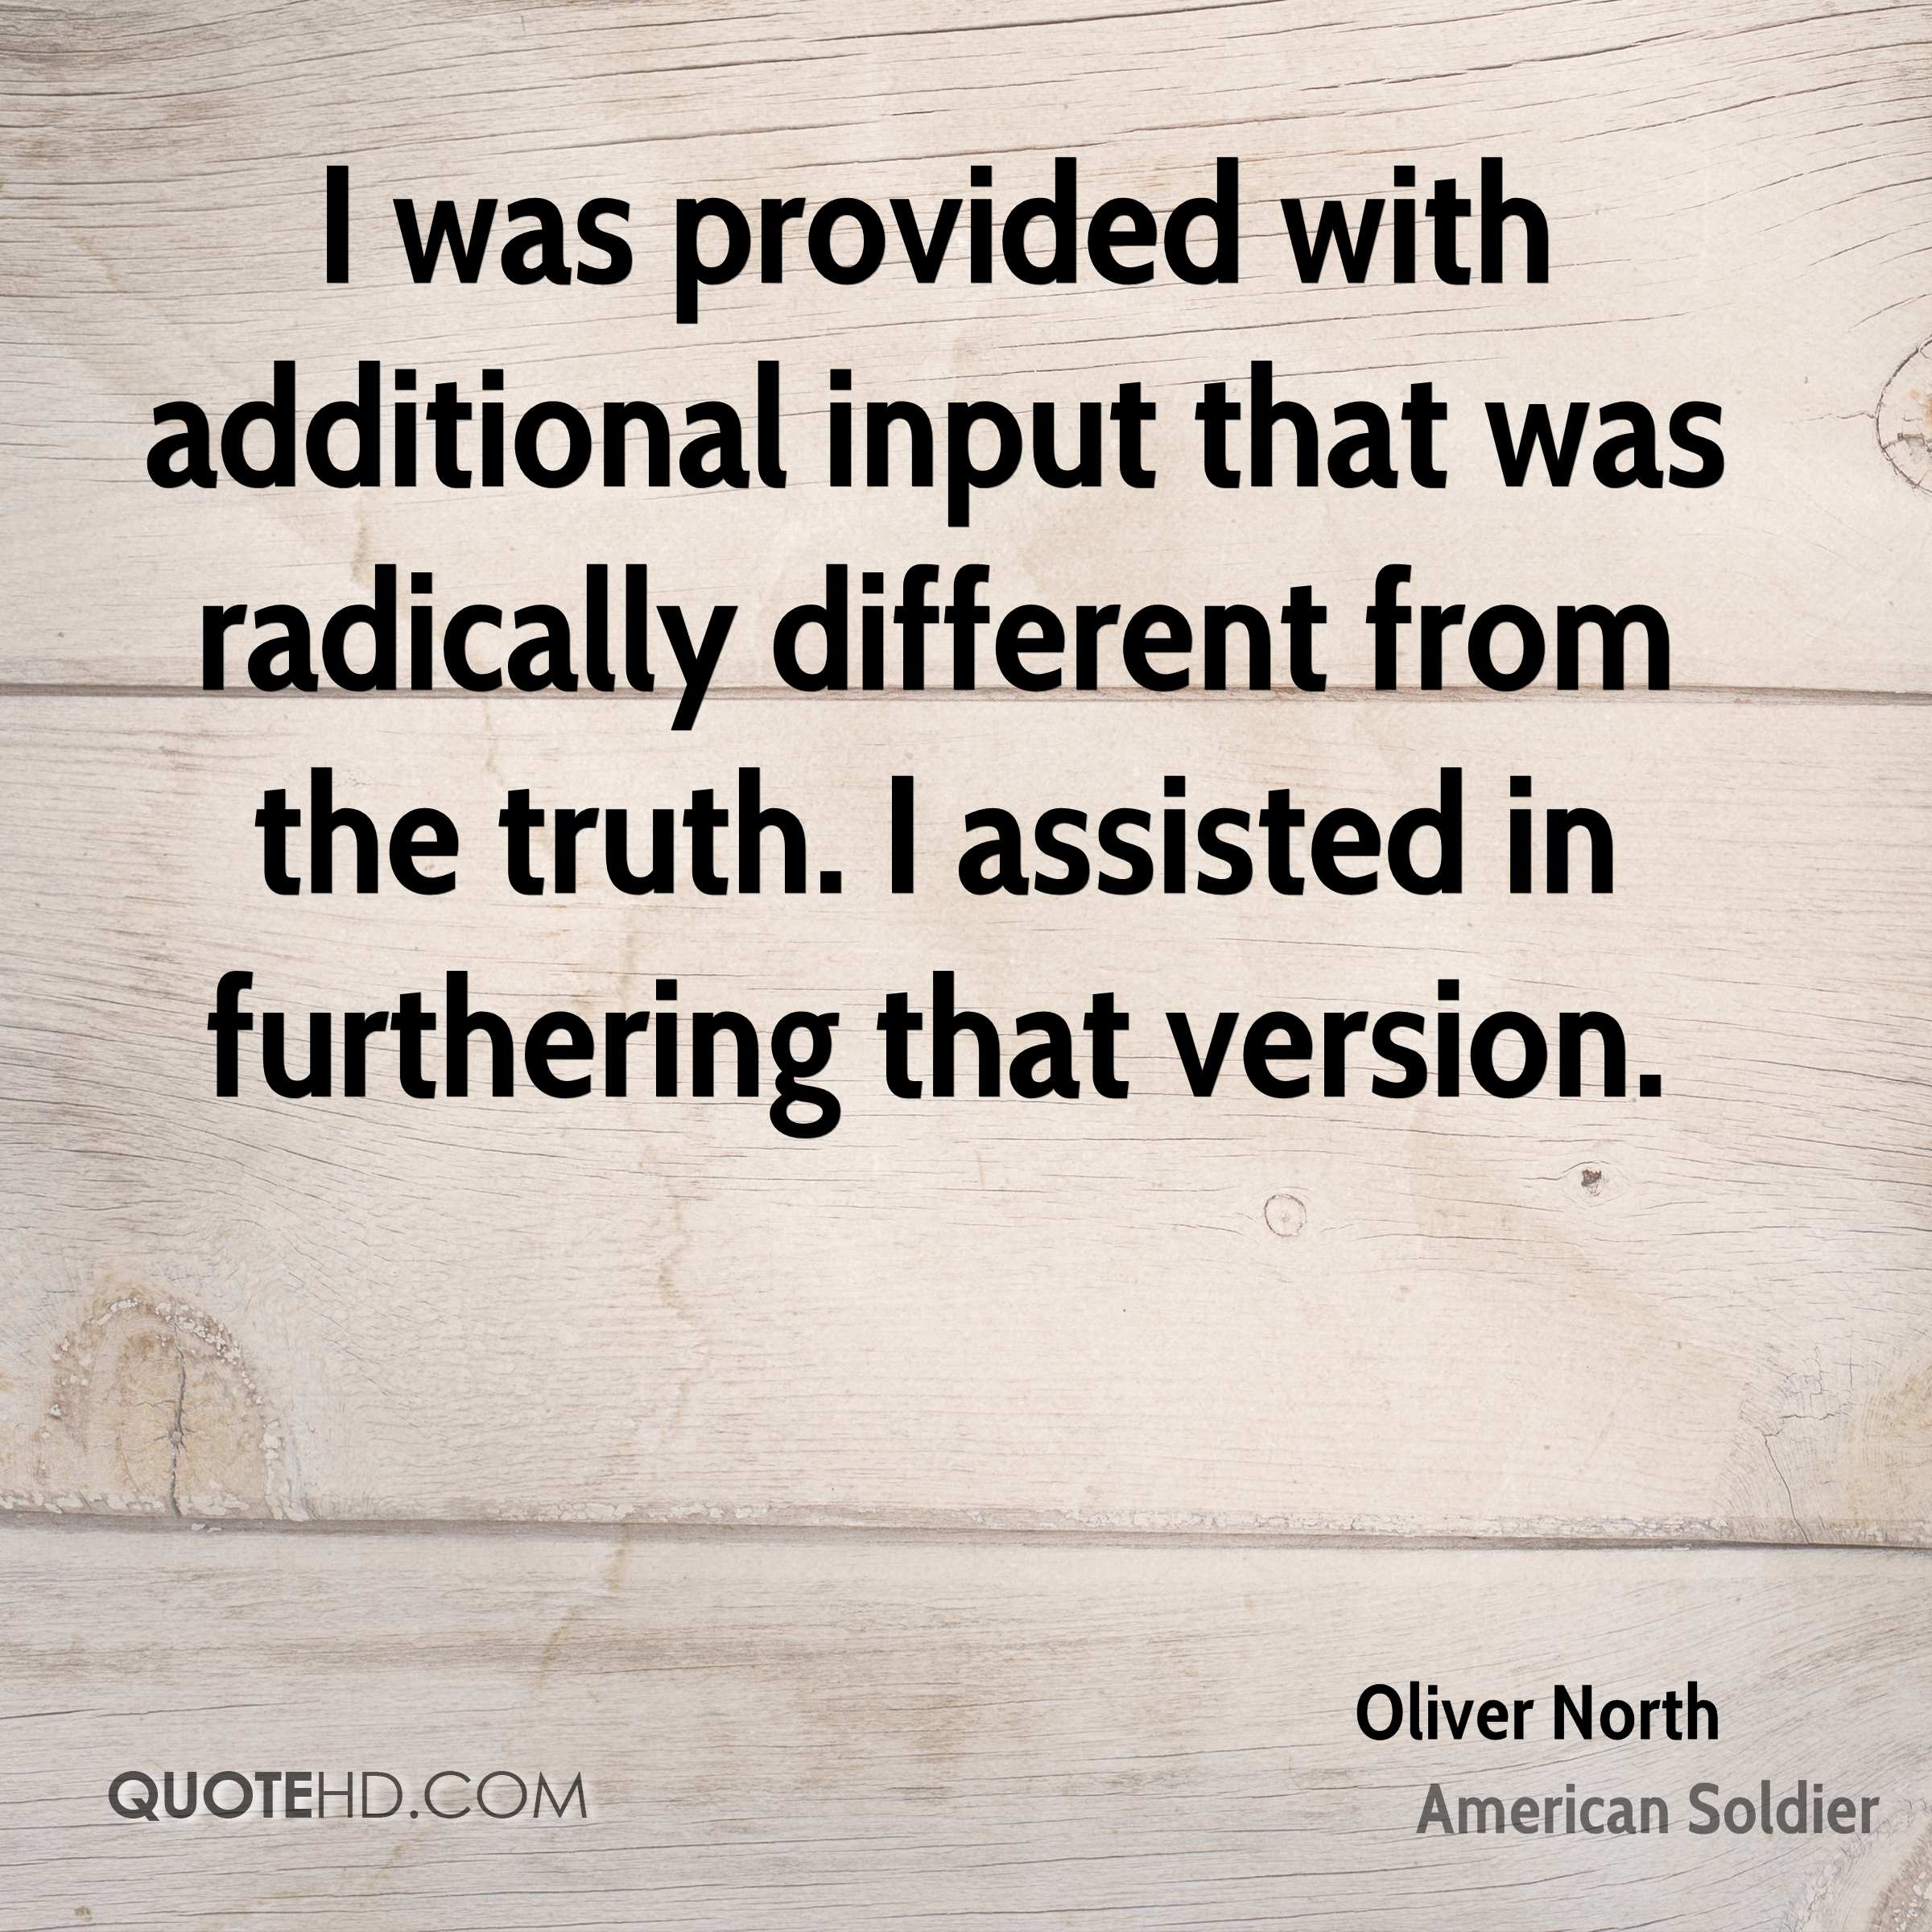 I was provided with additional input that was radically different from the truth. I assisted in furthering that version.